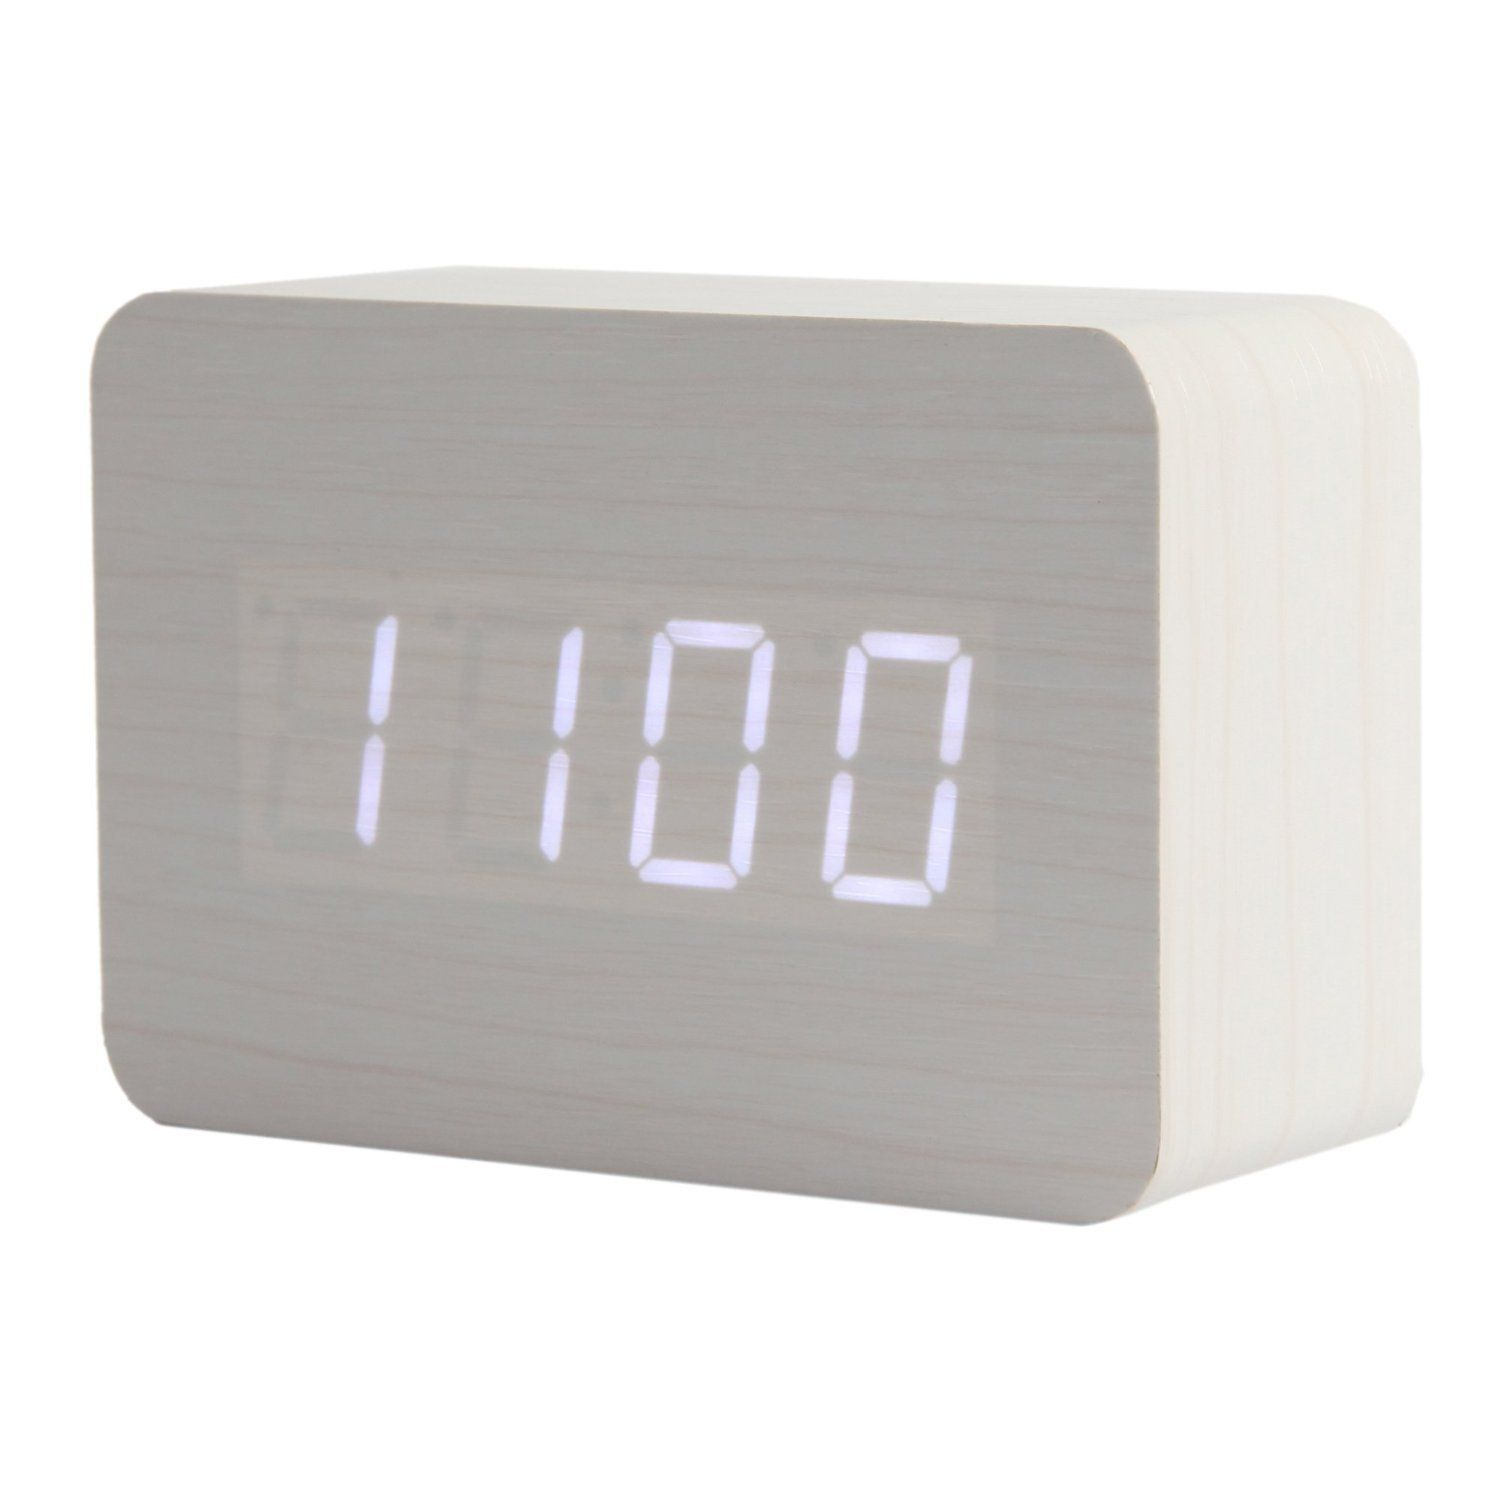 digital office clocks. KABB Light Brown Wood Grain LED Alarm Clock - Shows Time And Temperature Good Digital Office Clocks G